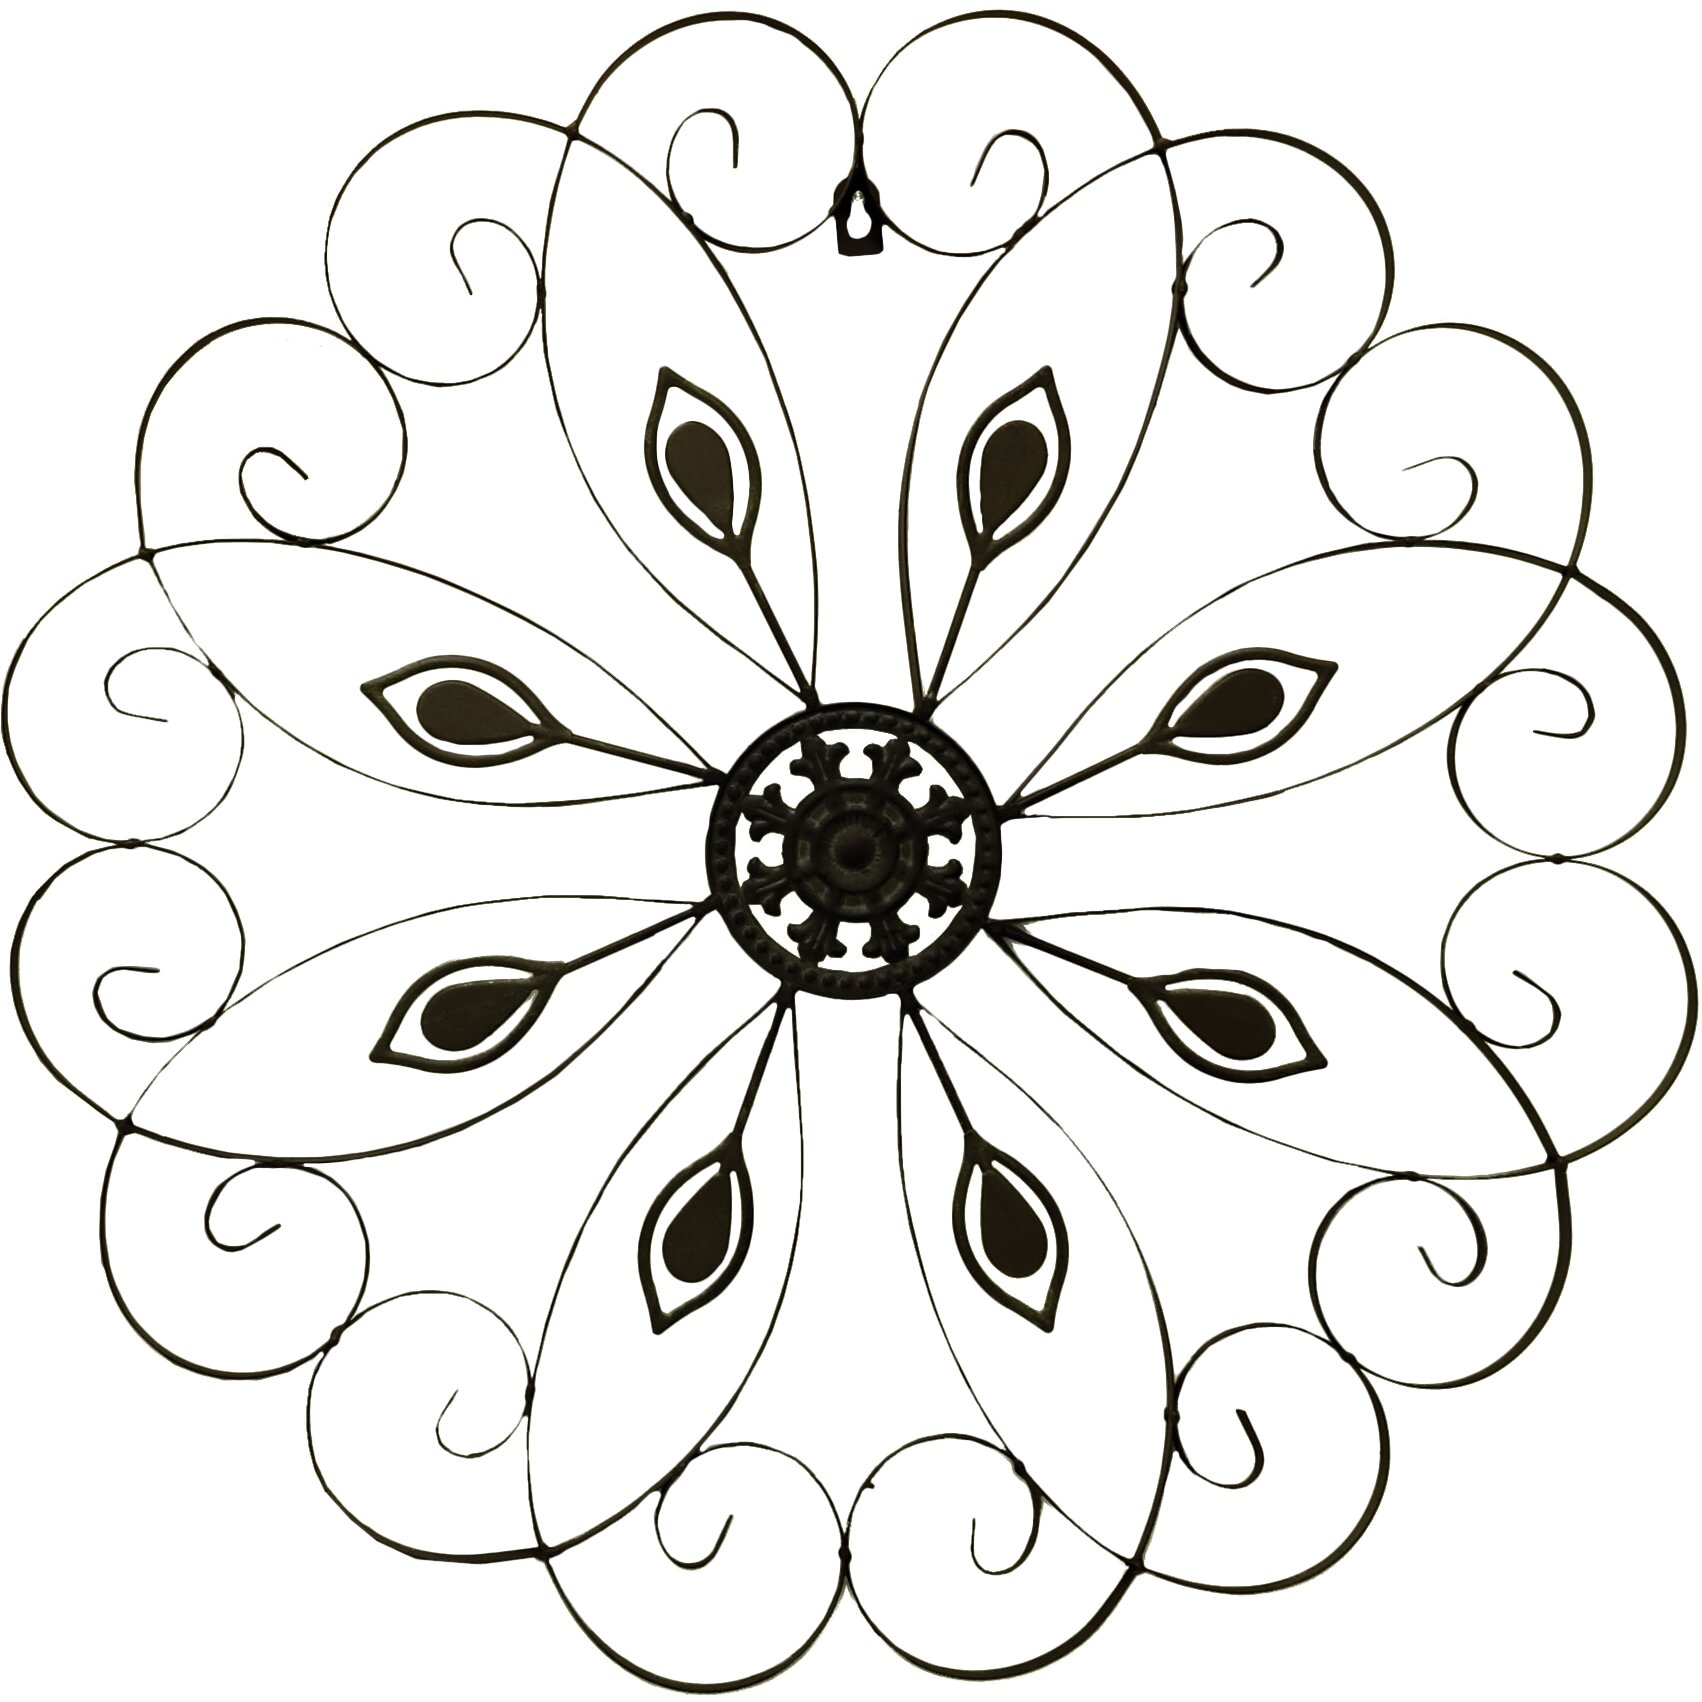 Scroll Design Wall Decor : Rayes imports metal scroll design wall decor reviews